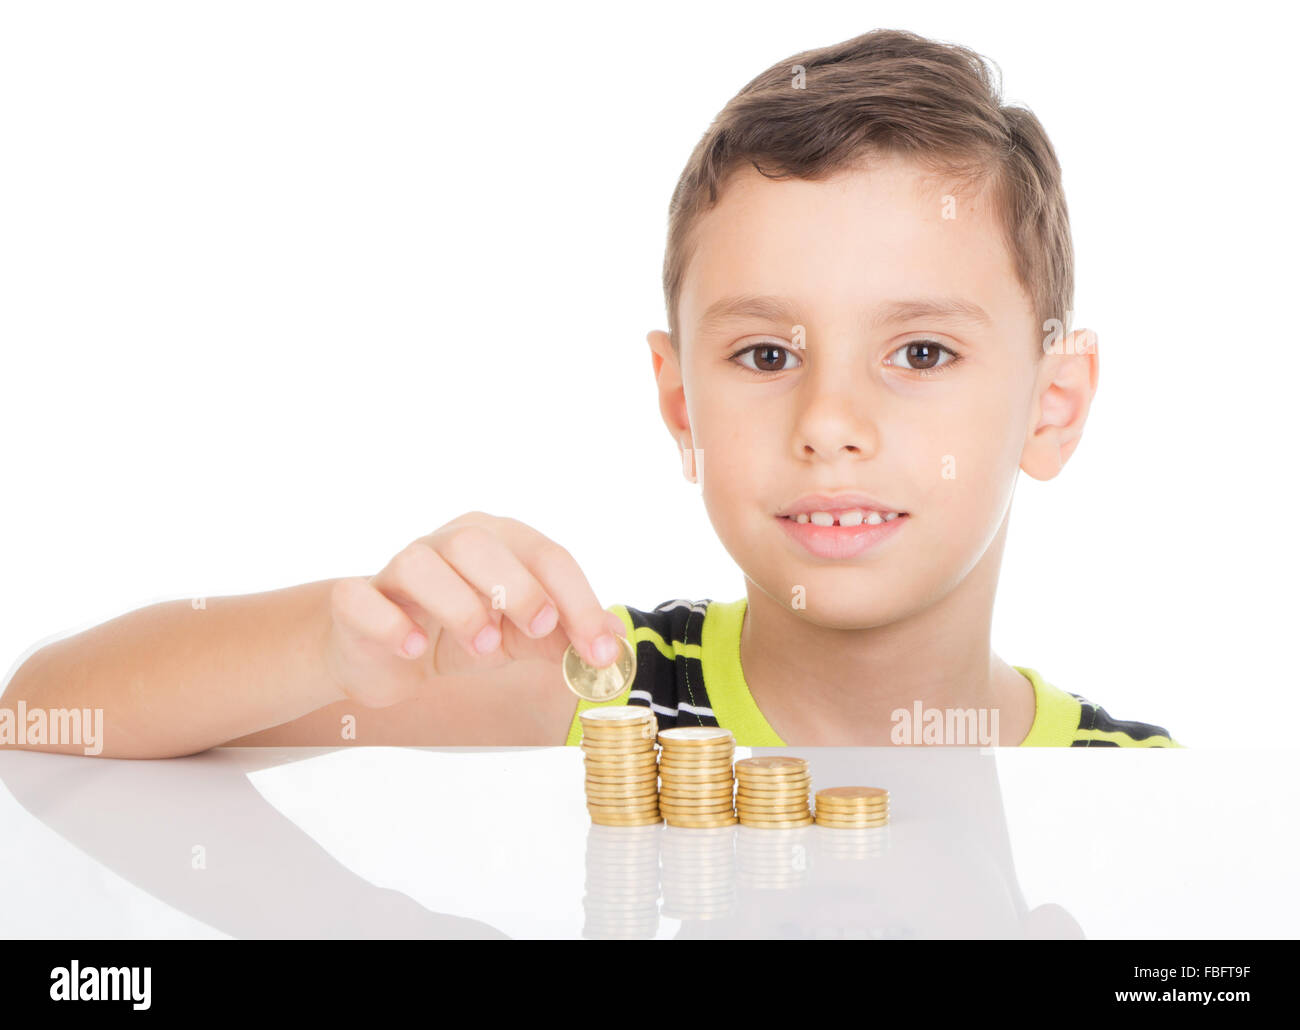 Kid building towers with his golden coins - Stock Image